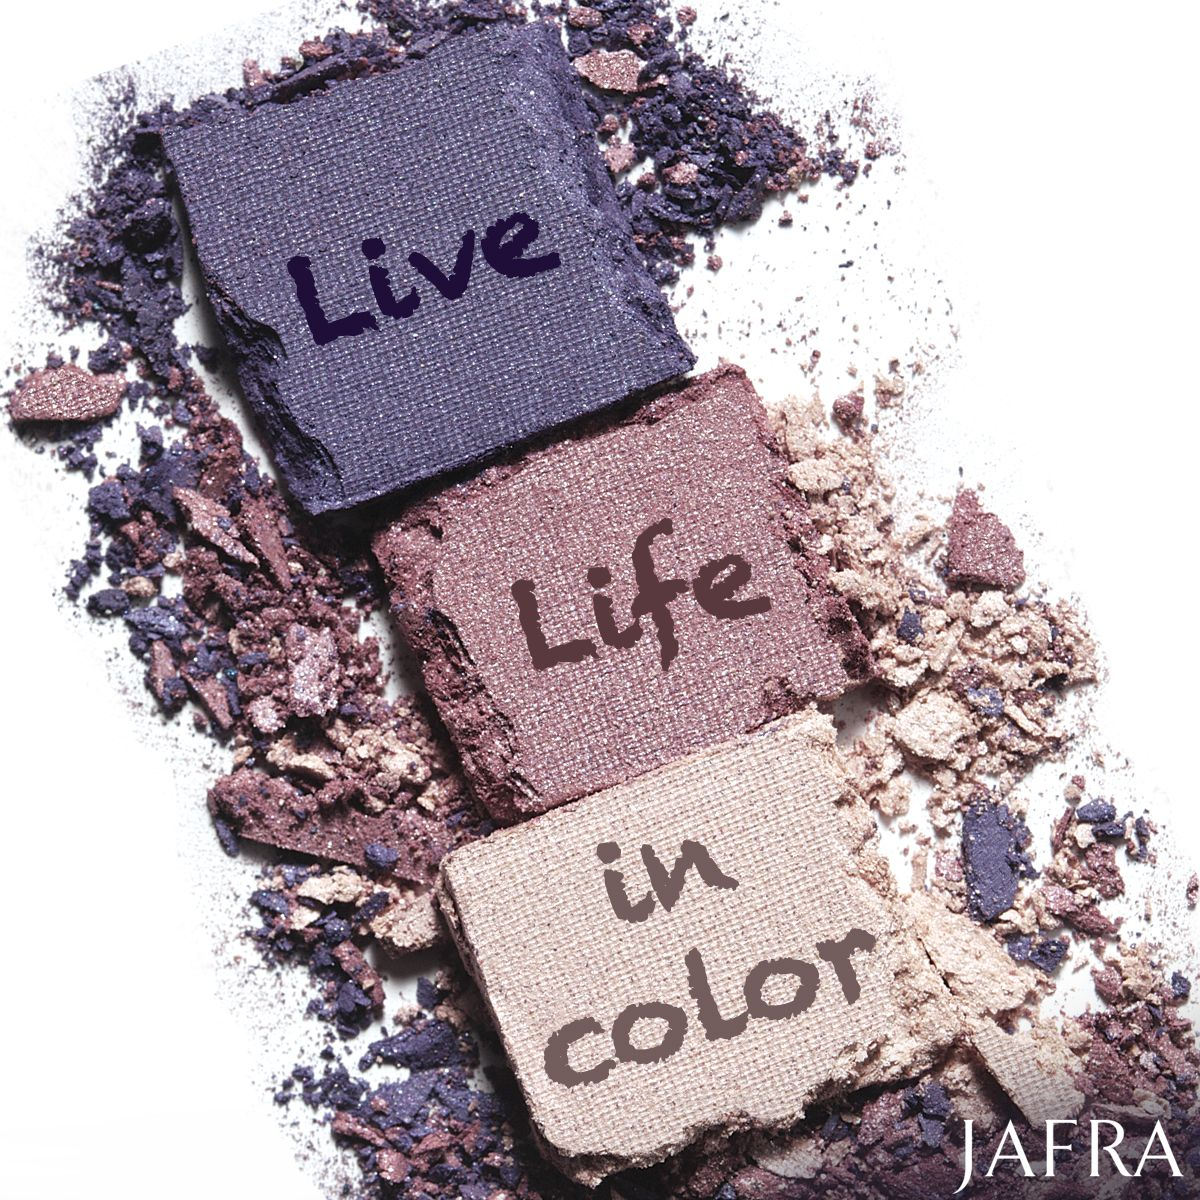 Express Yourself With Makeup Live Life In Color Royal Jelly Skin Jafra Cosmetics Makeup Color Cosmetics